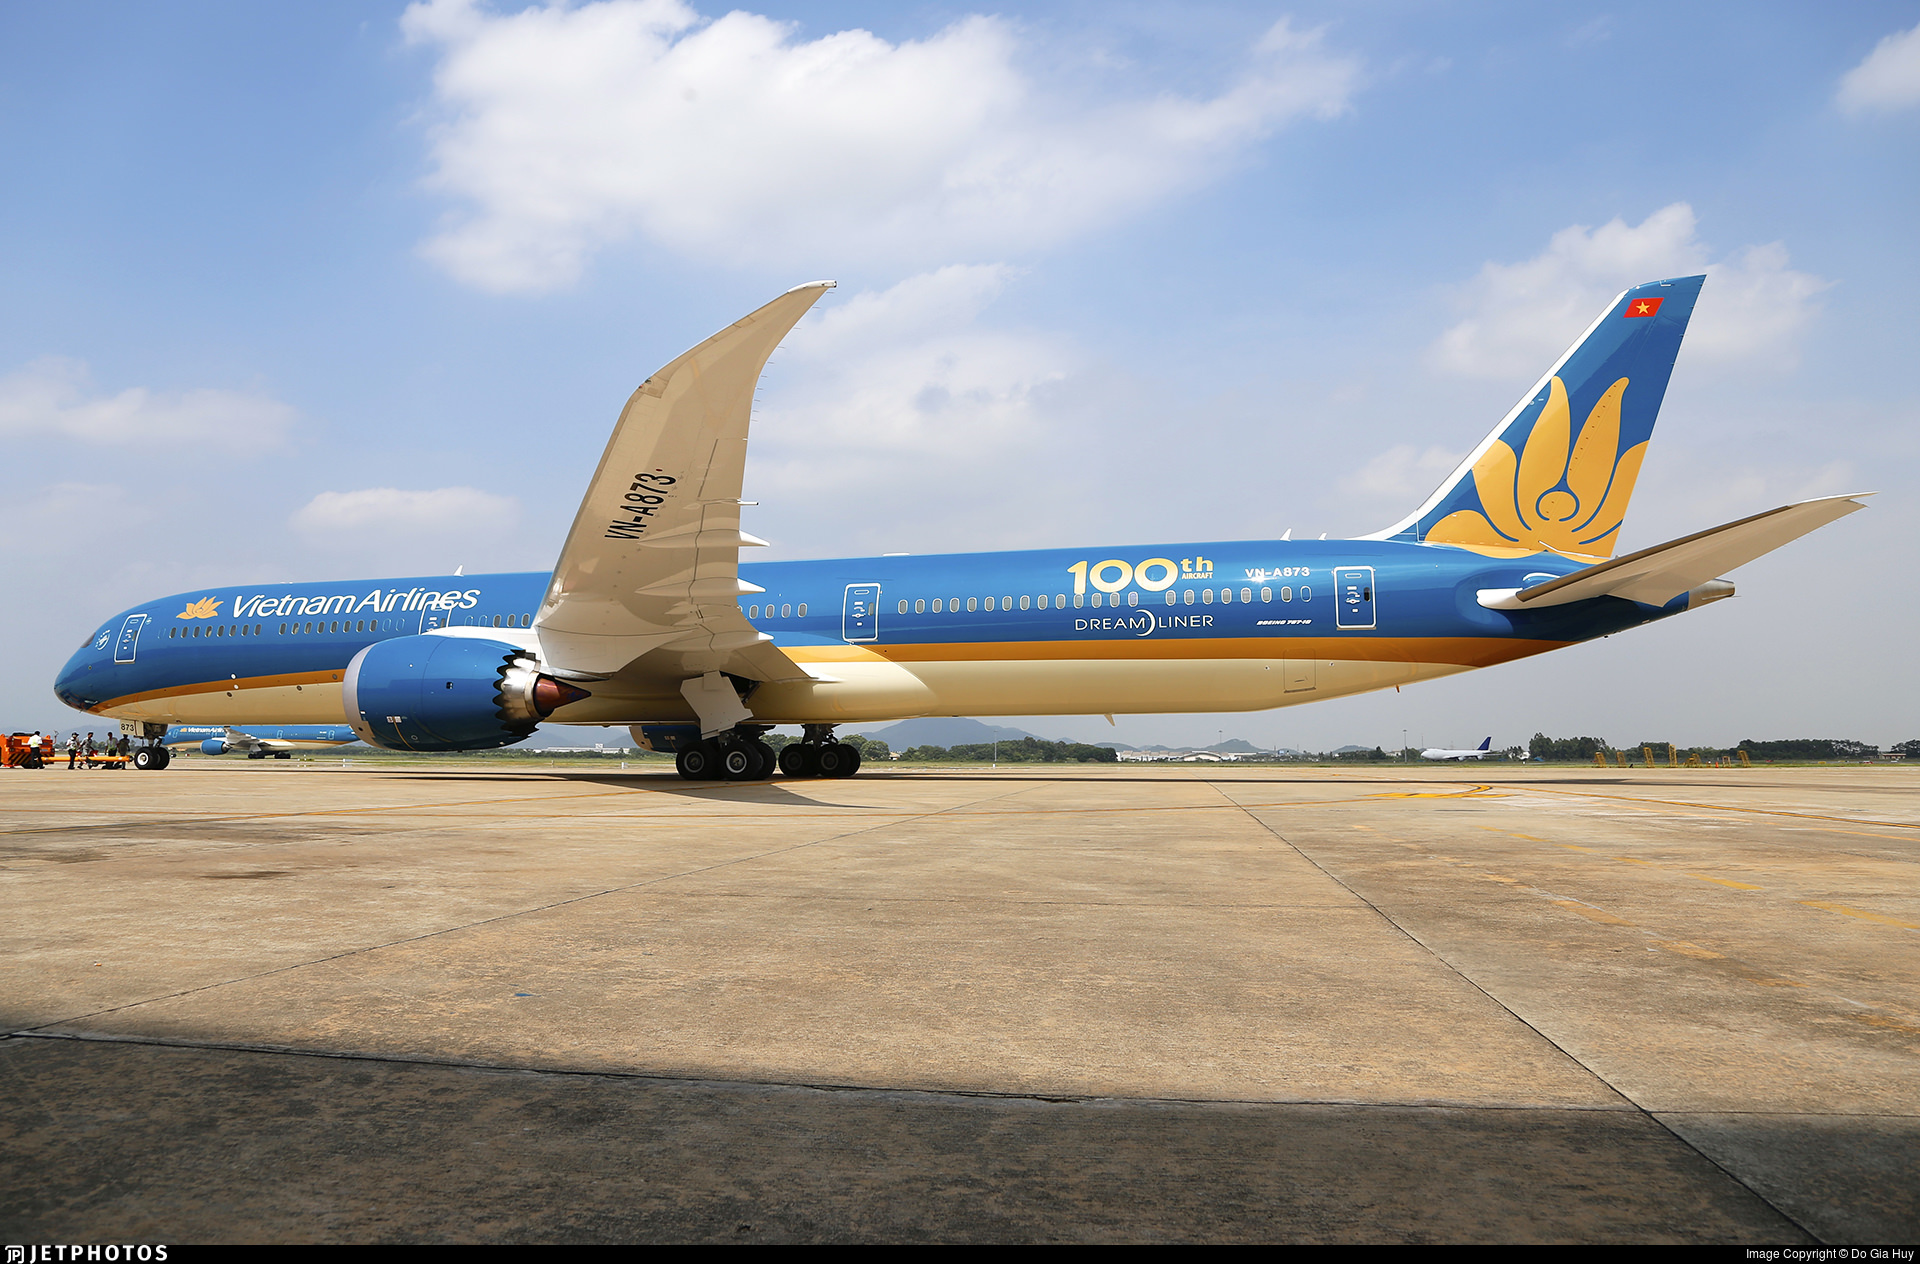 Vietnam Airlines 100th aircraft